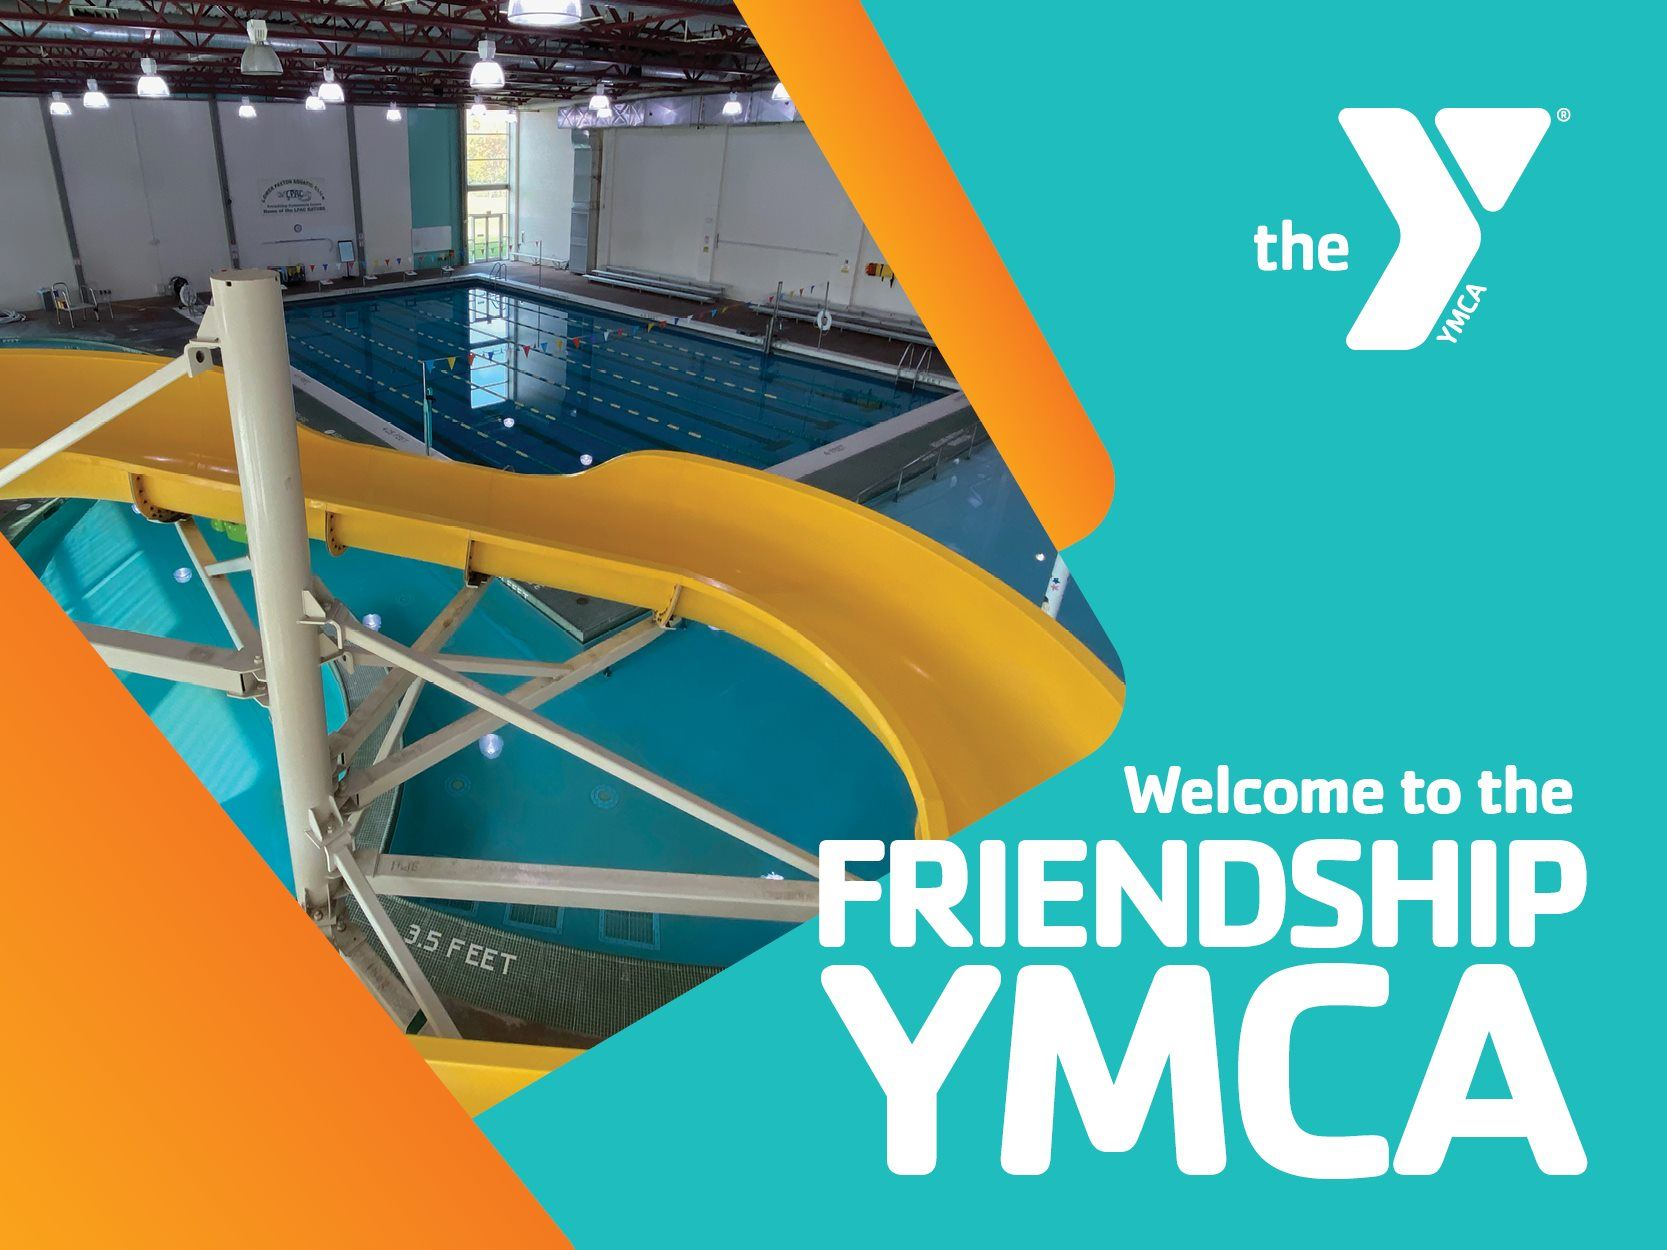 YMCA logo sort of